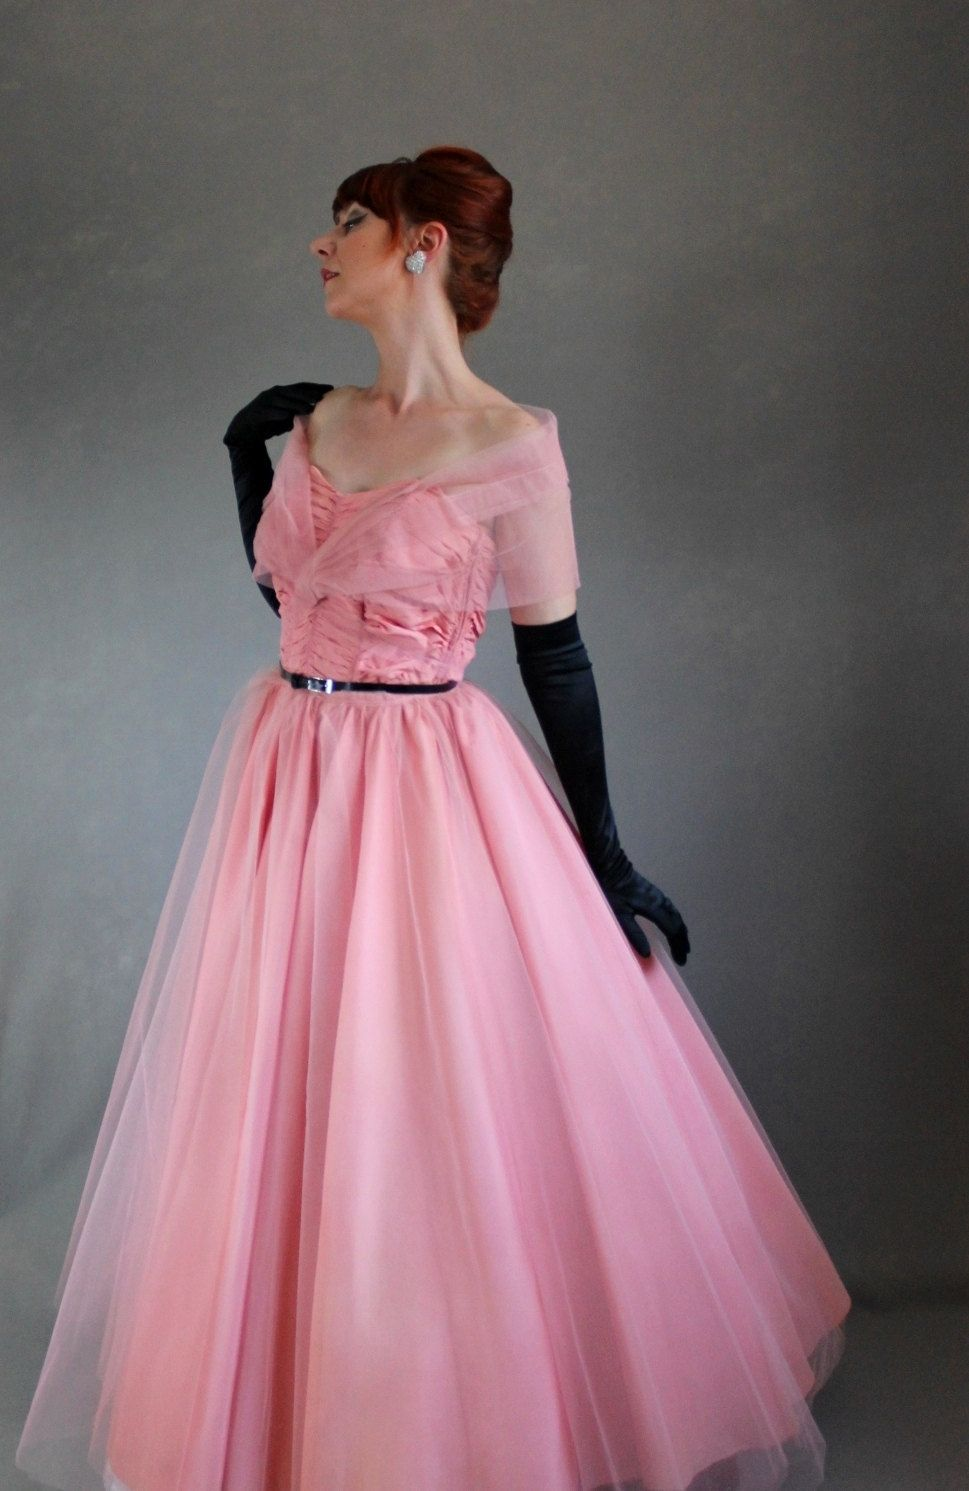 S pink party prom dress mad men fashion evening dress